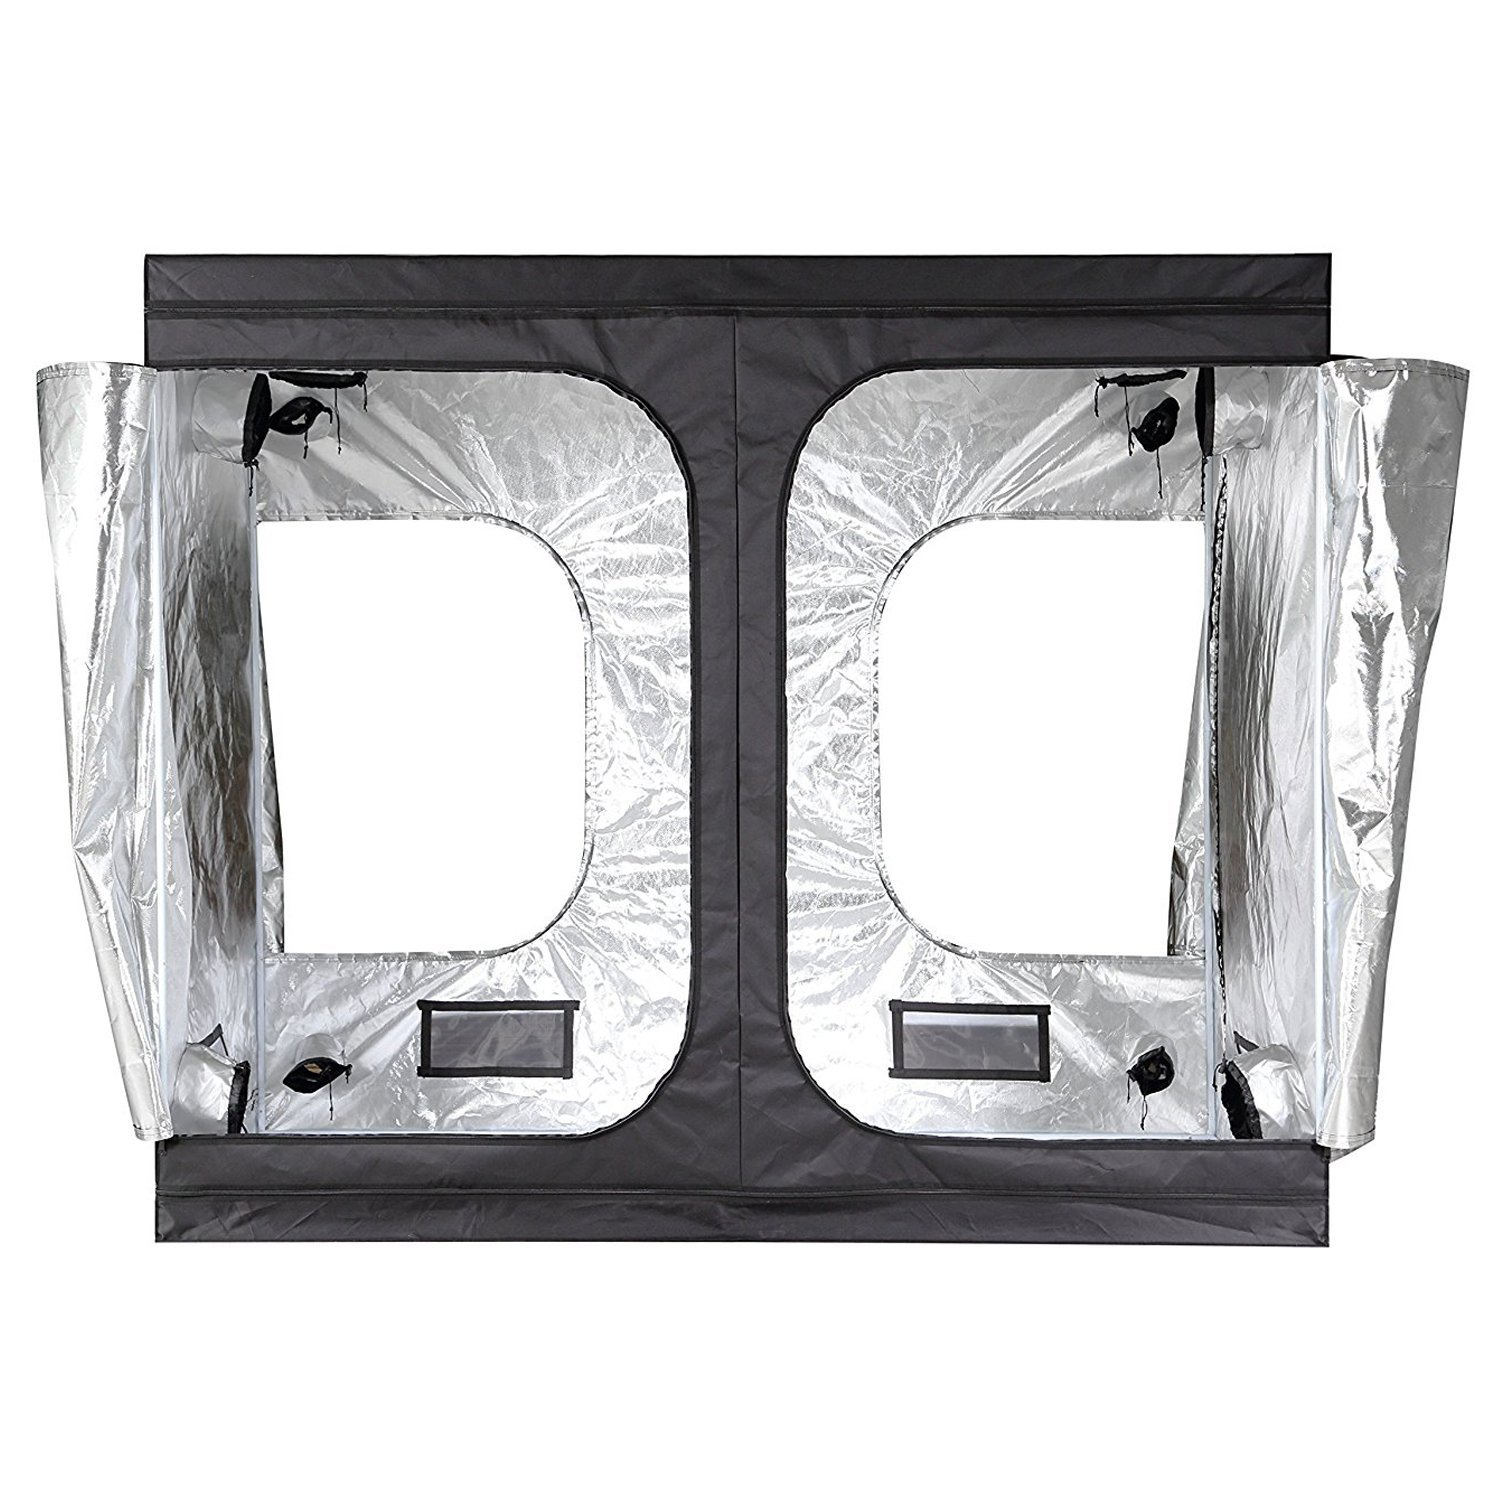 Hydroponic Water-Resistant Grow Tent